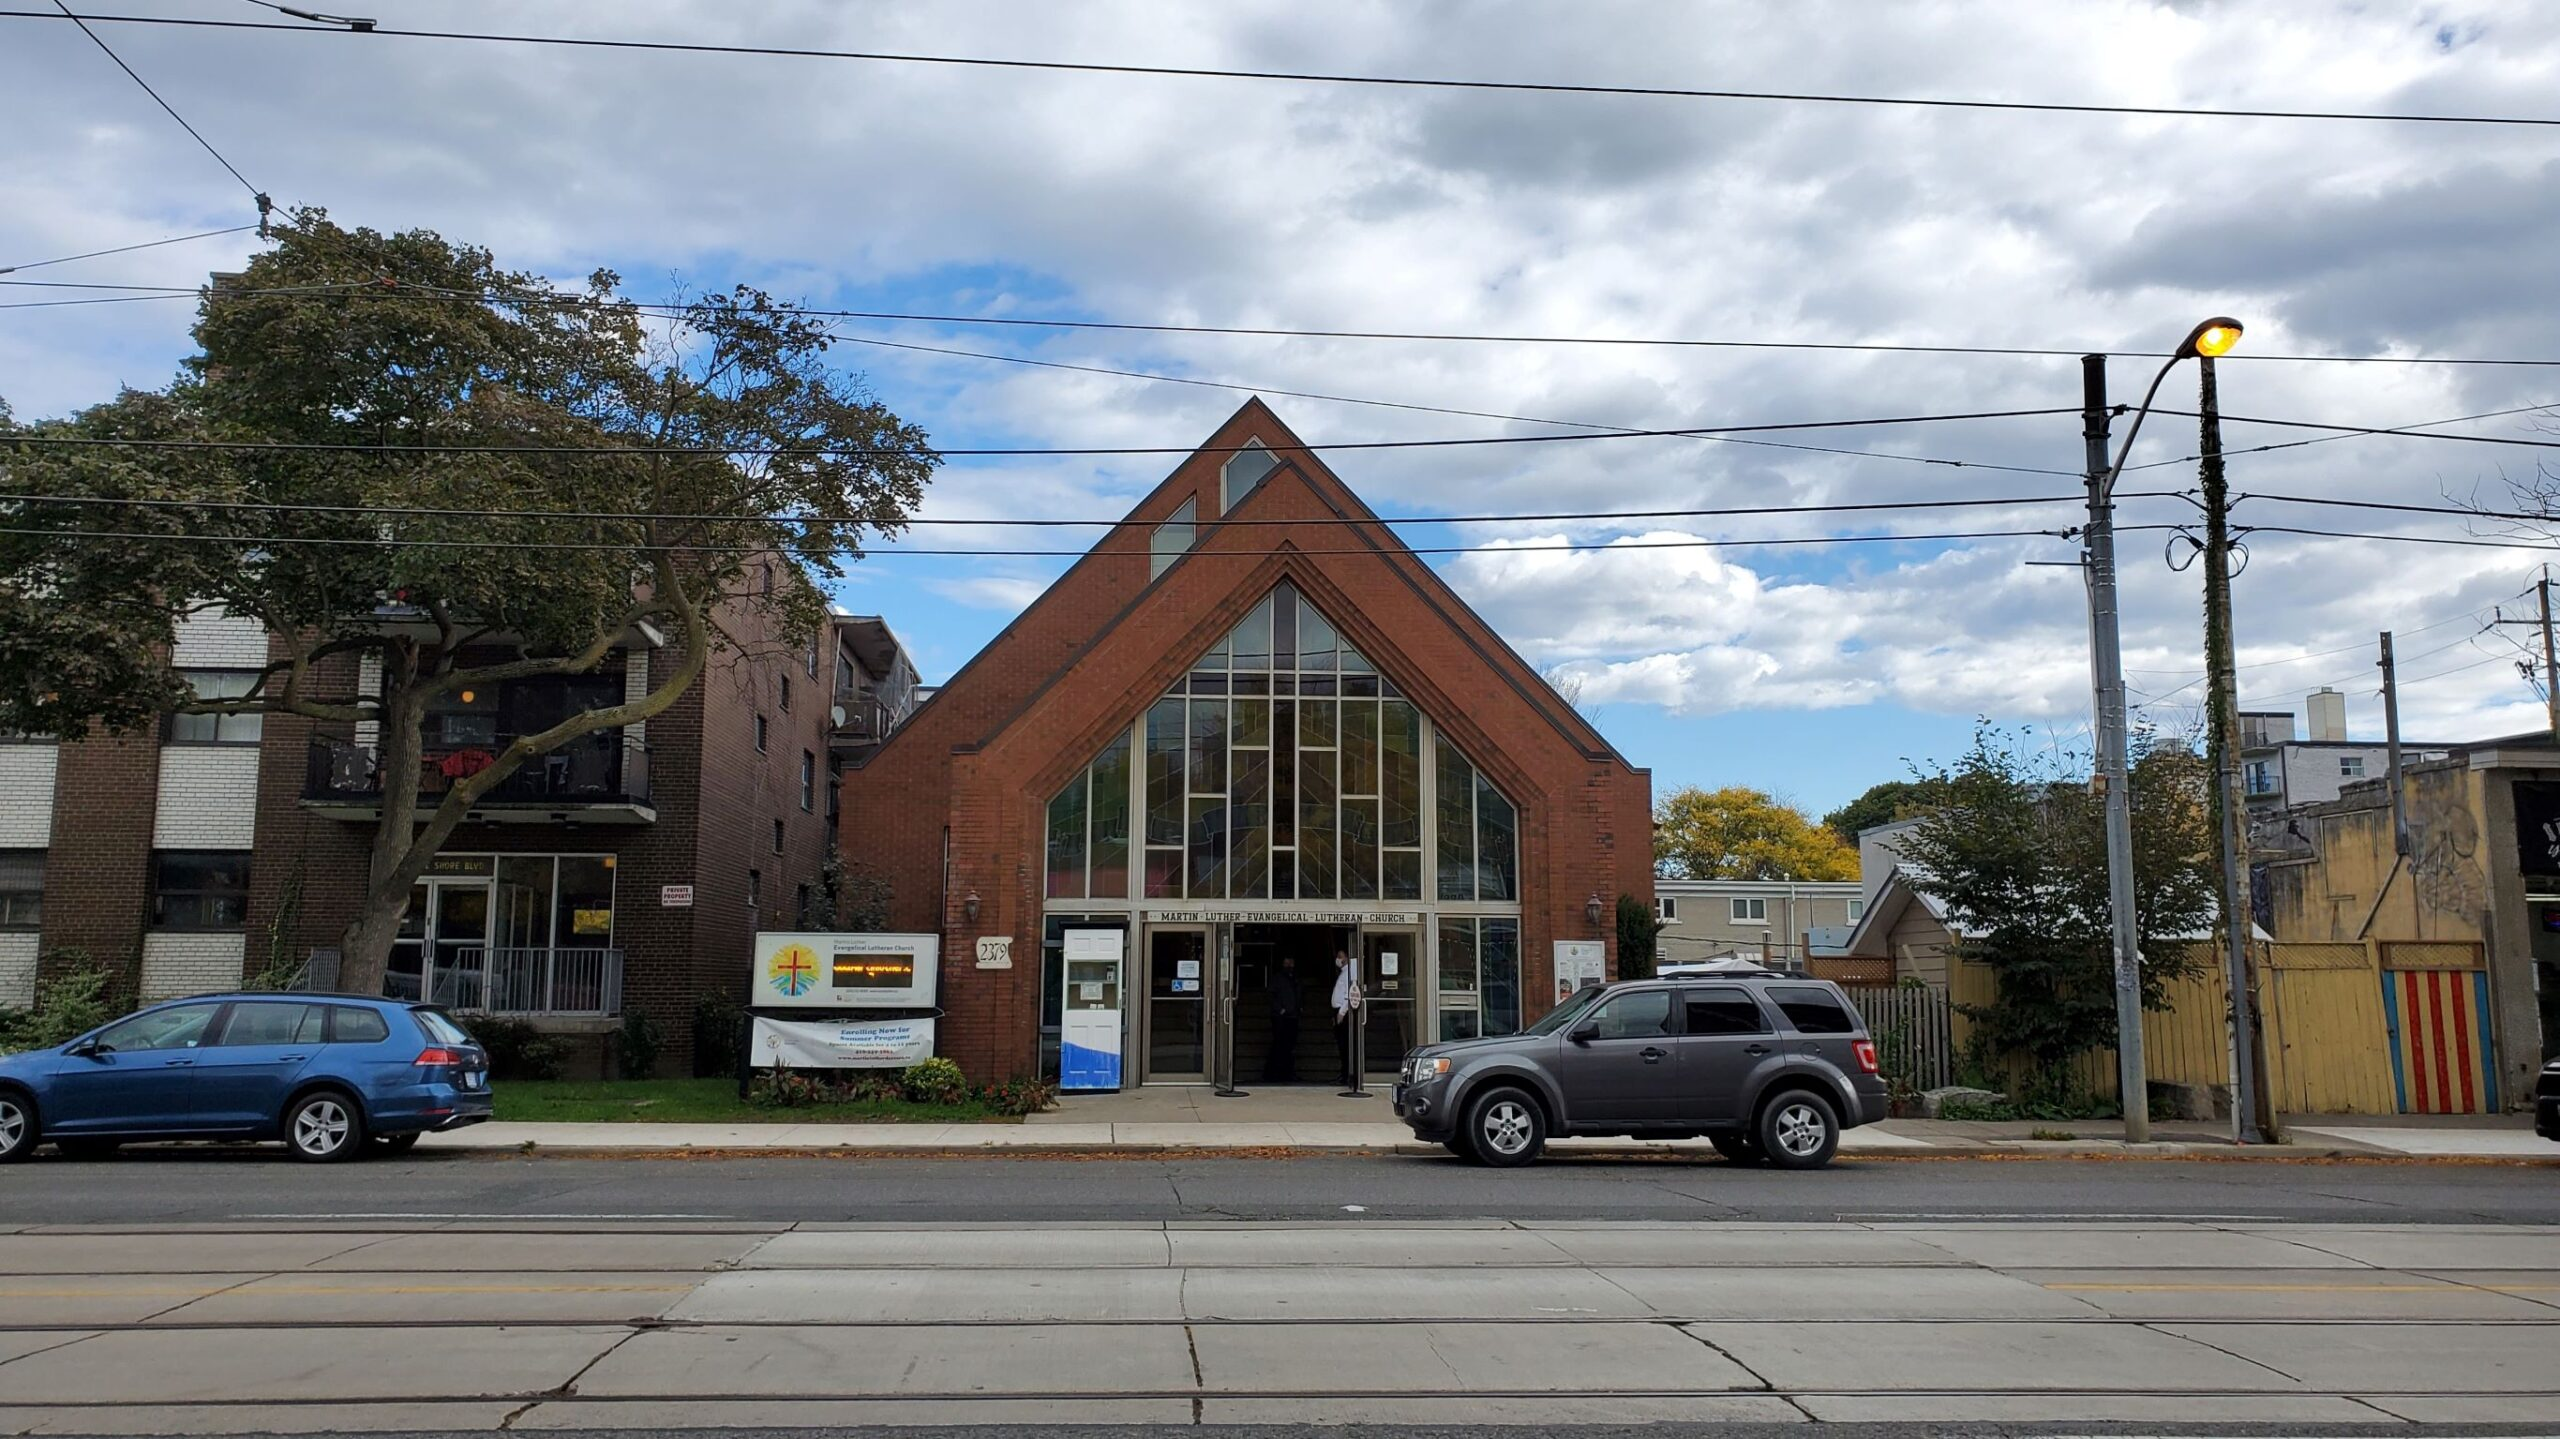 2021 Oct 17 streetfront church building